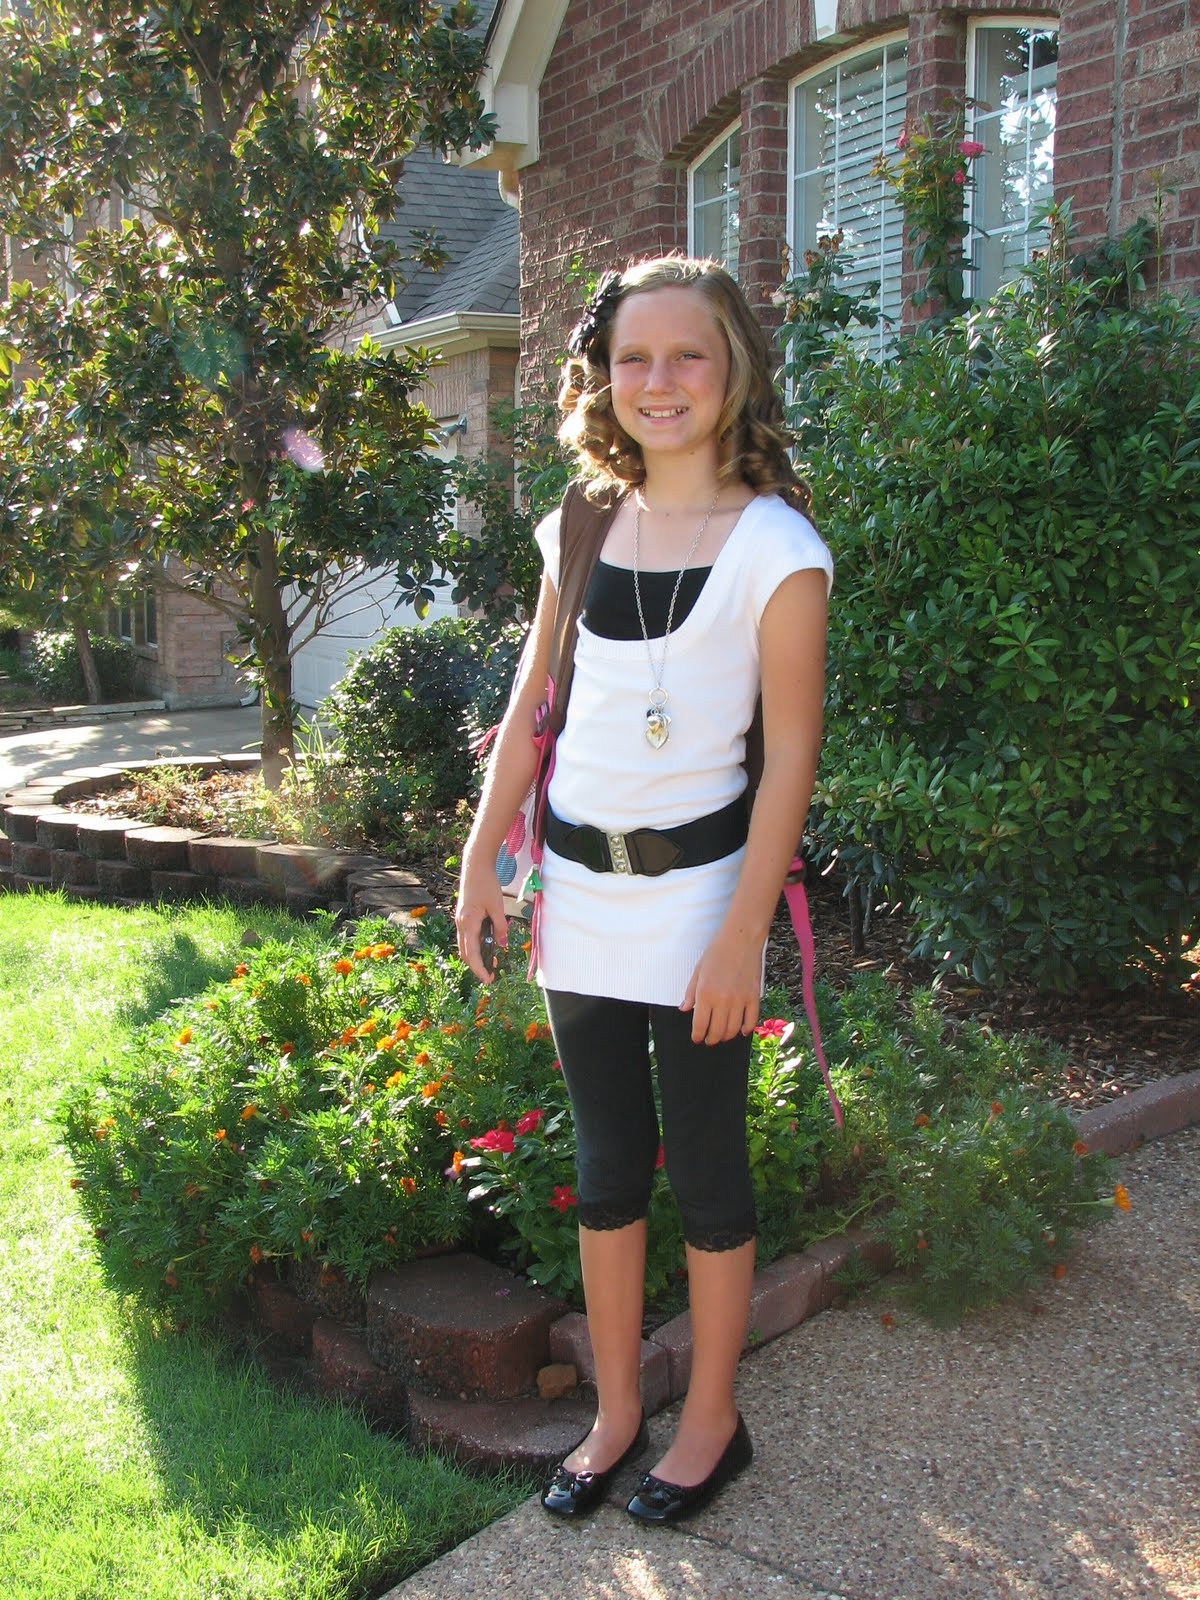 my first day in 6th grade